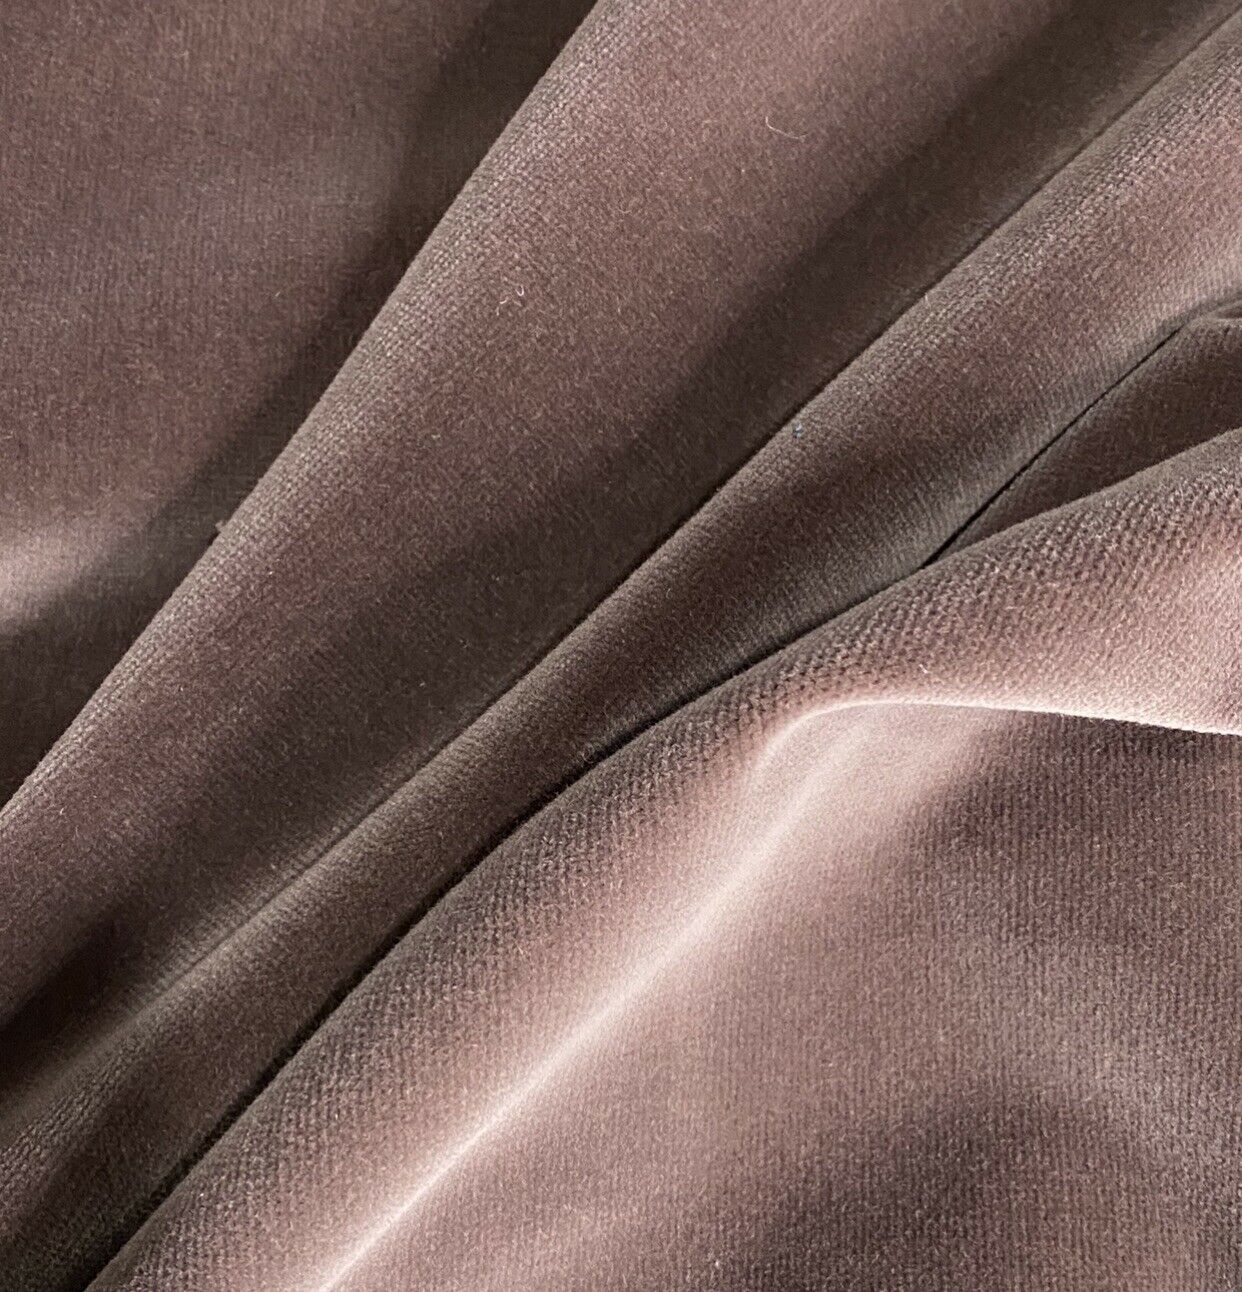 NEW Designer Velvet Cotton Upholstery Fabric - Soft- By The Yard- Cocoa Mauve